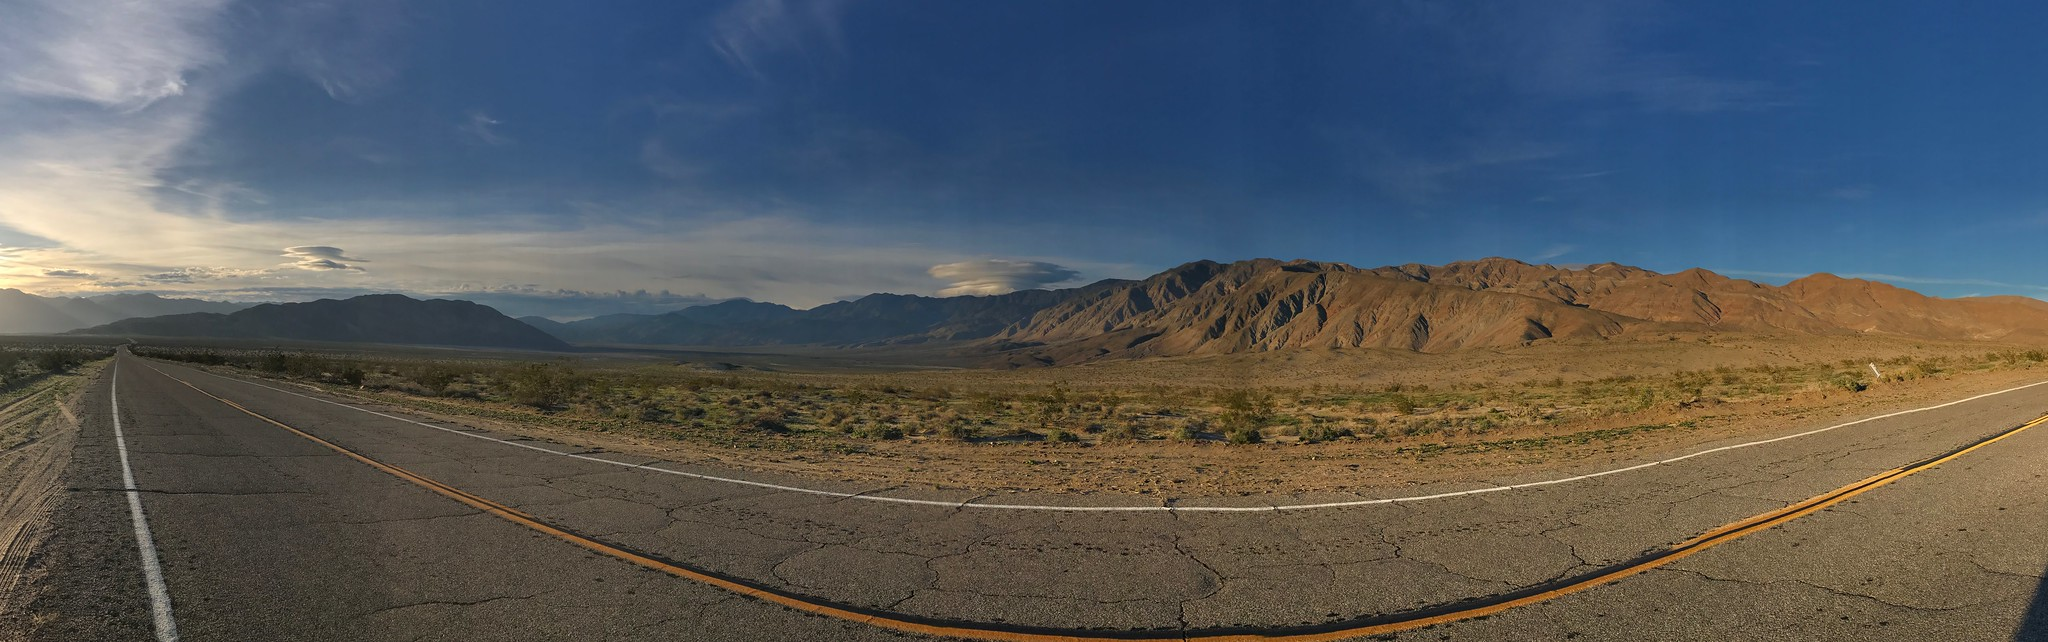 Panorama from State Route 22, the Borrego-Salton Seaway.